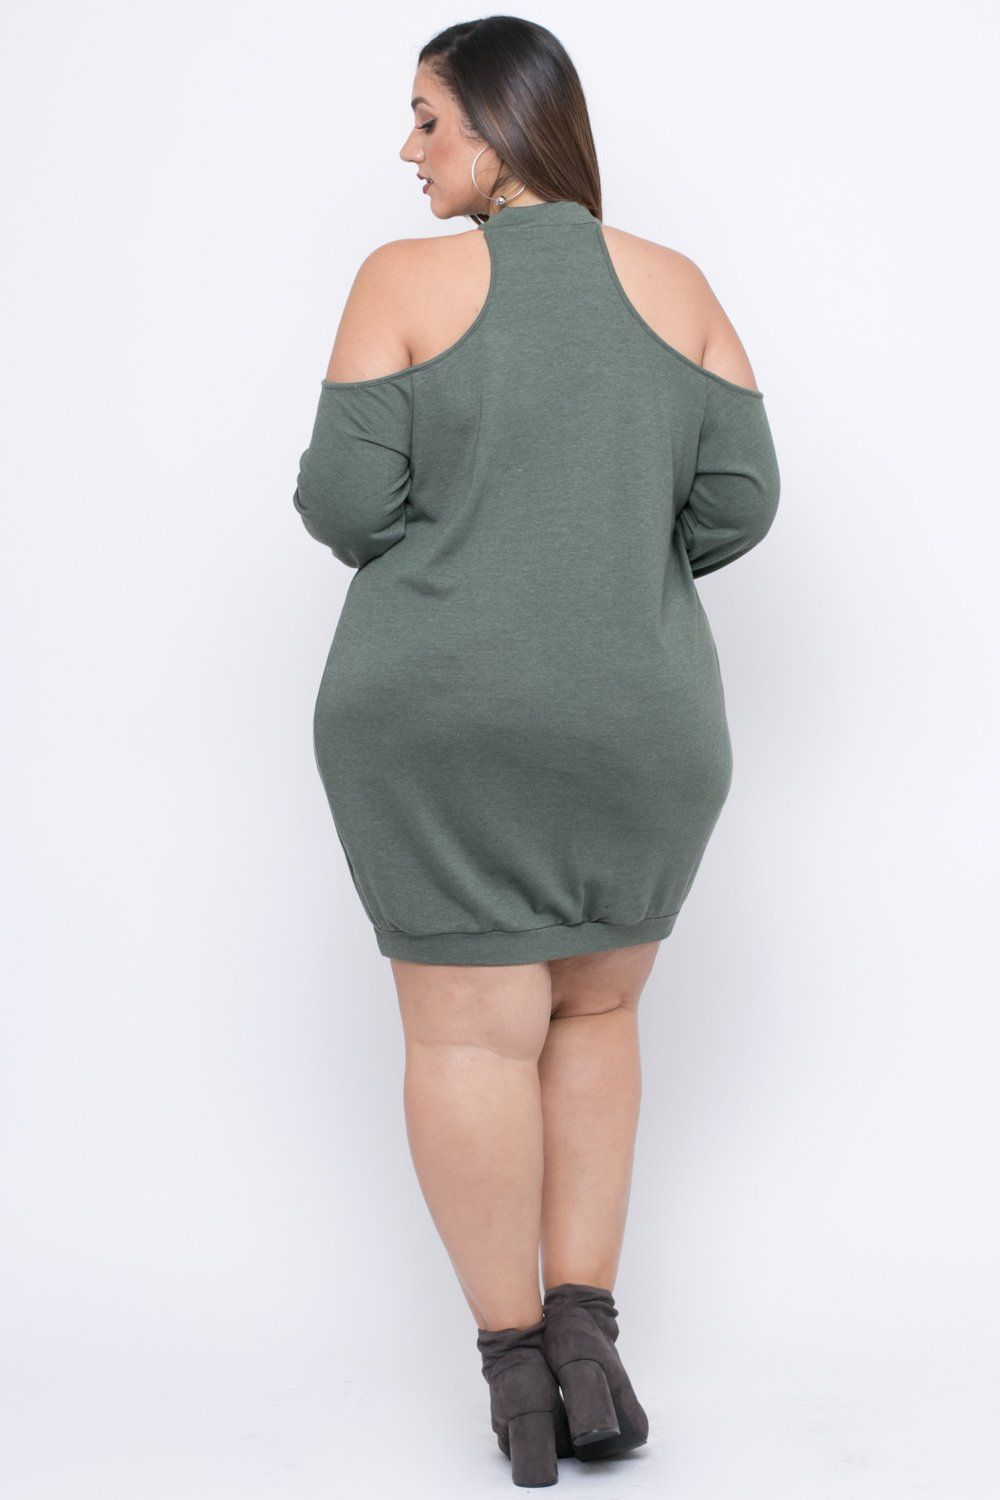 Plus Size Distressed Sweater Dress Olive Erica Lauren Mcneill